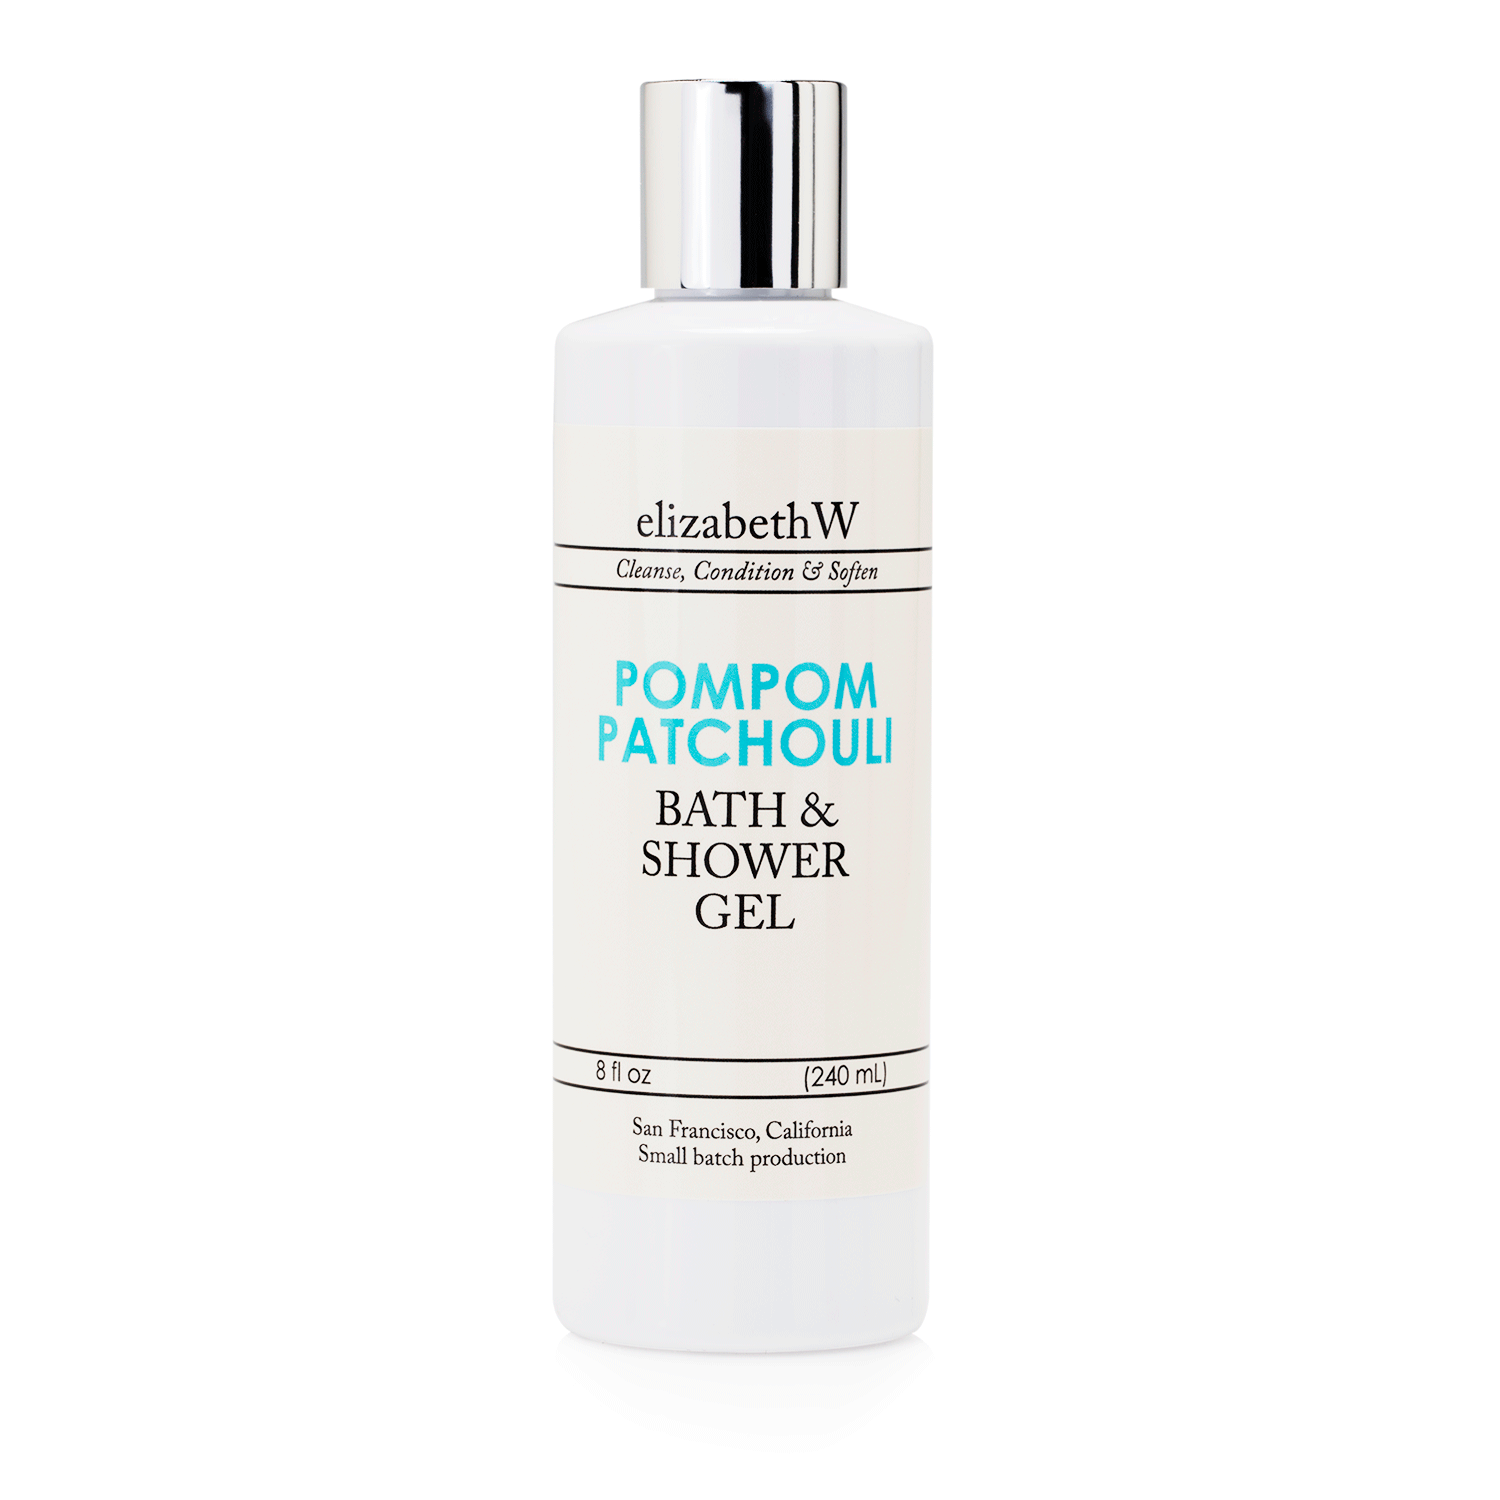 Pompom Patchouli Bath & Shower Gel